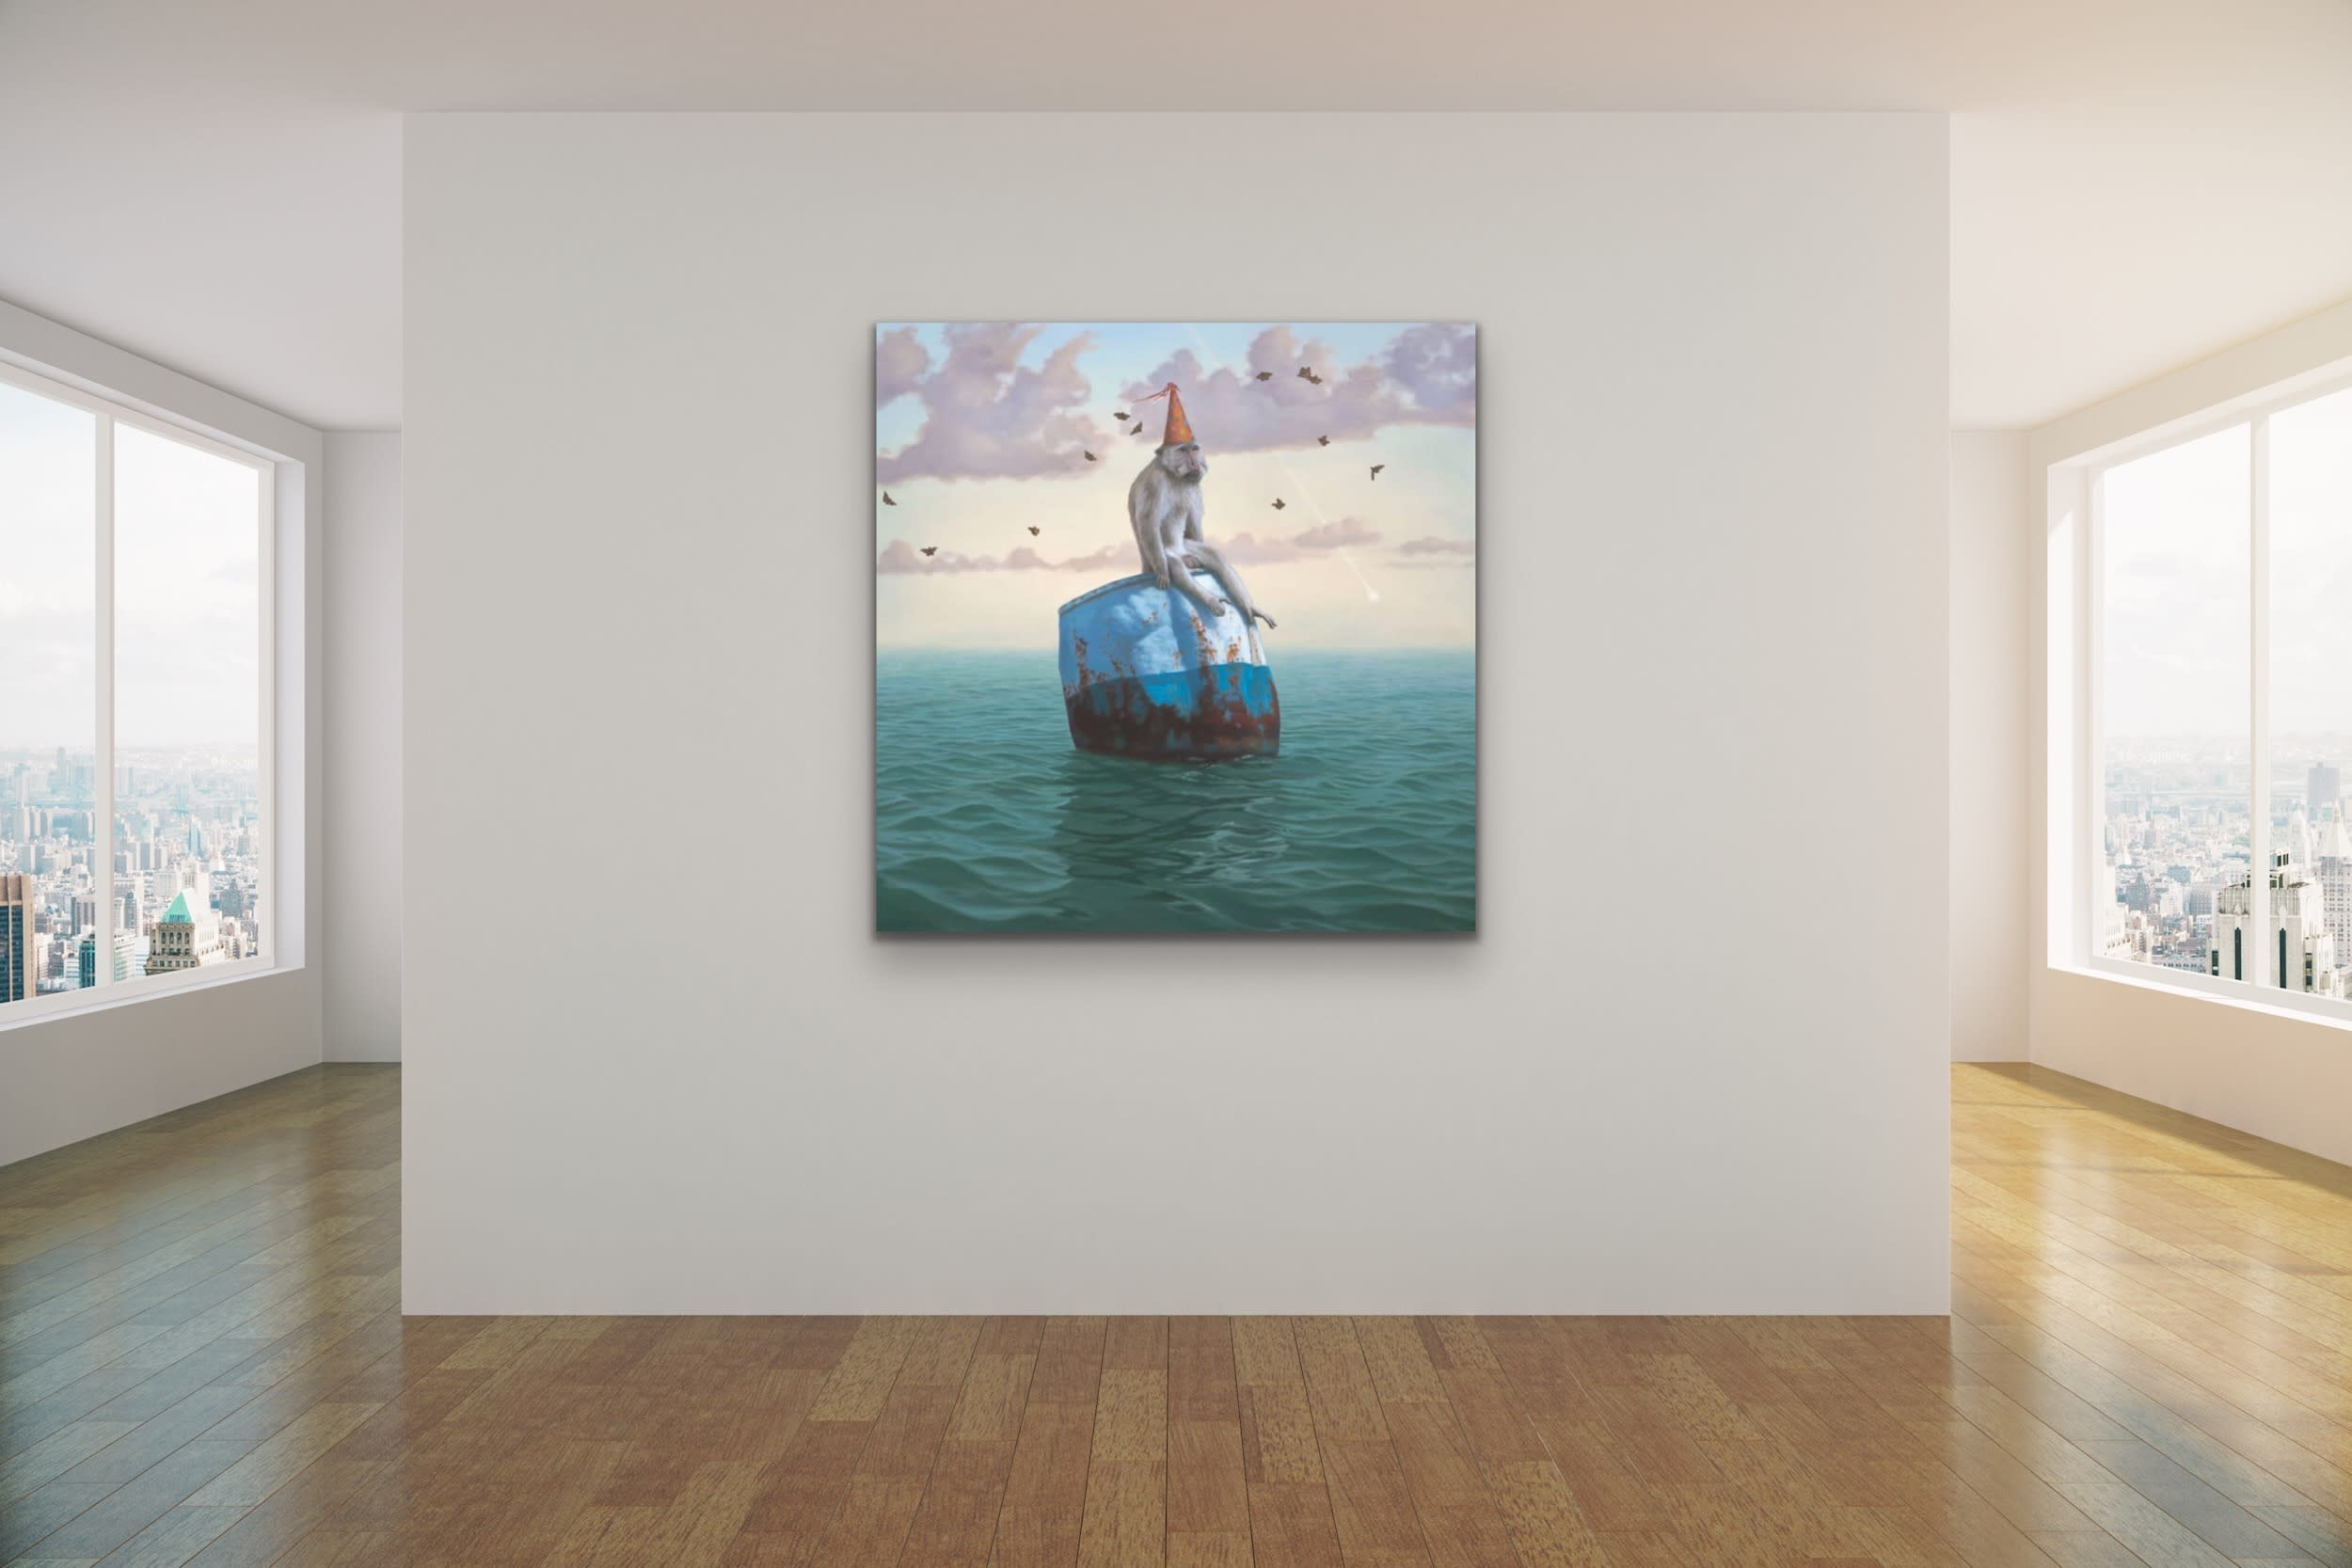 <div class='title'>           Paul Bond Magical Realism Poetry Serene Landscape Animals Nature Surreal Metaphorical Whimsical Fantasy Evo Art Maui Lahaina Front Street Art Gallery 61         </div>